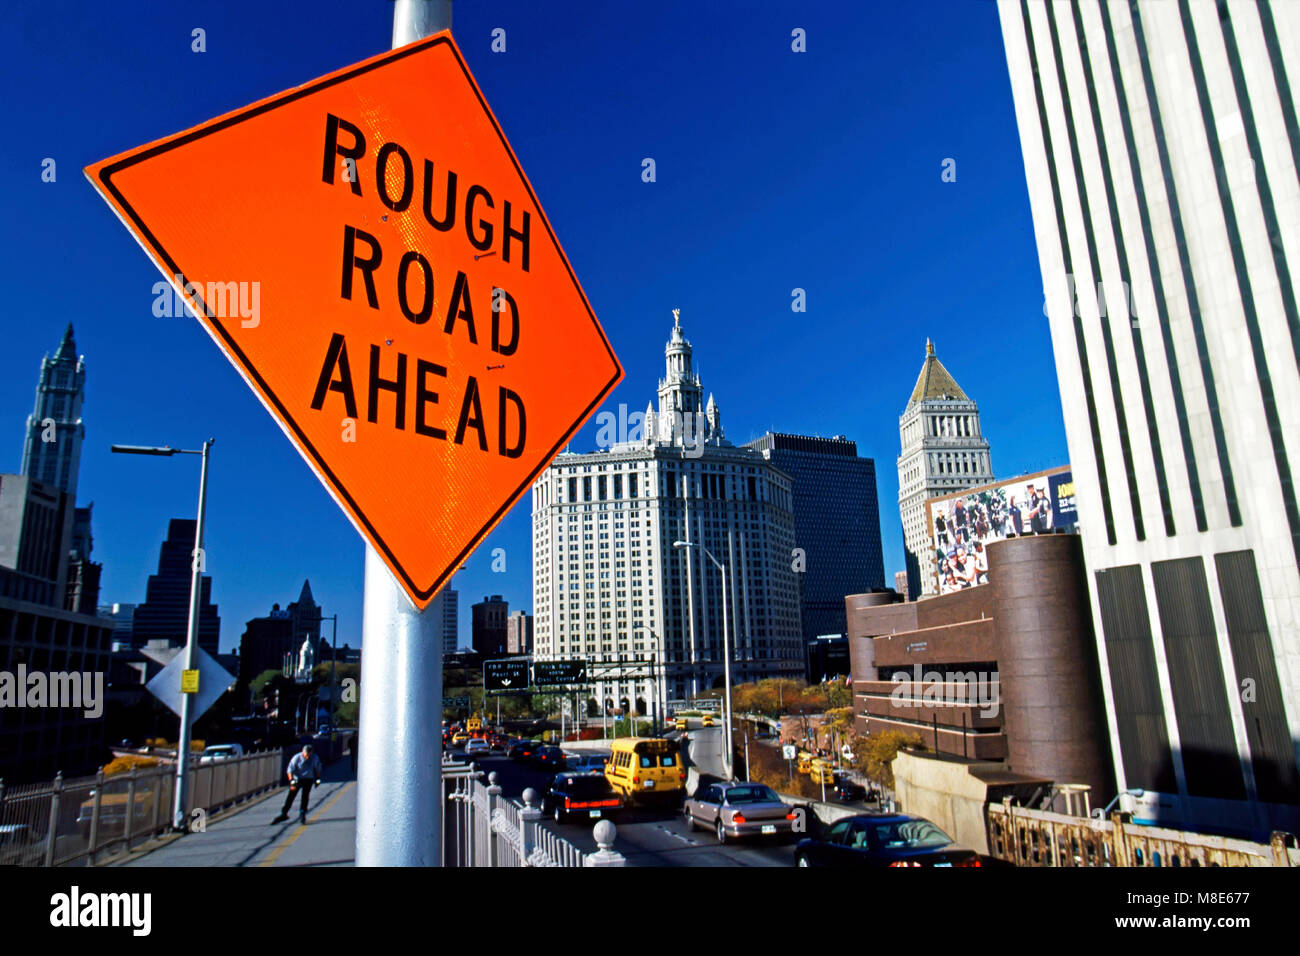 Rough Road Ahead sign, New Yok, USA - Stock Image